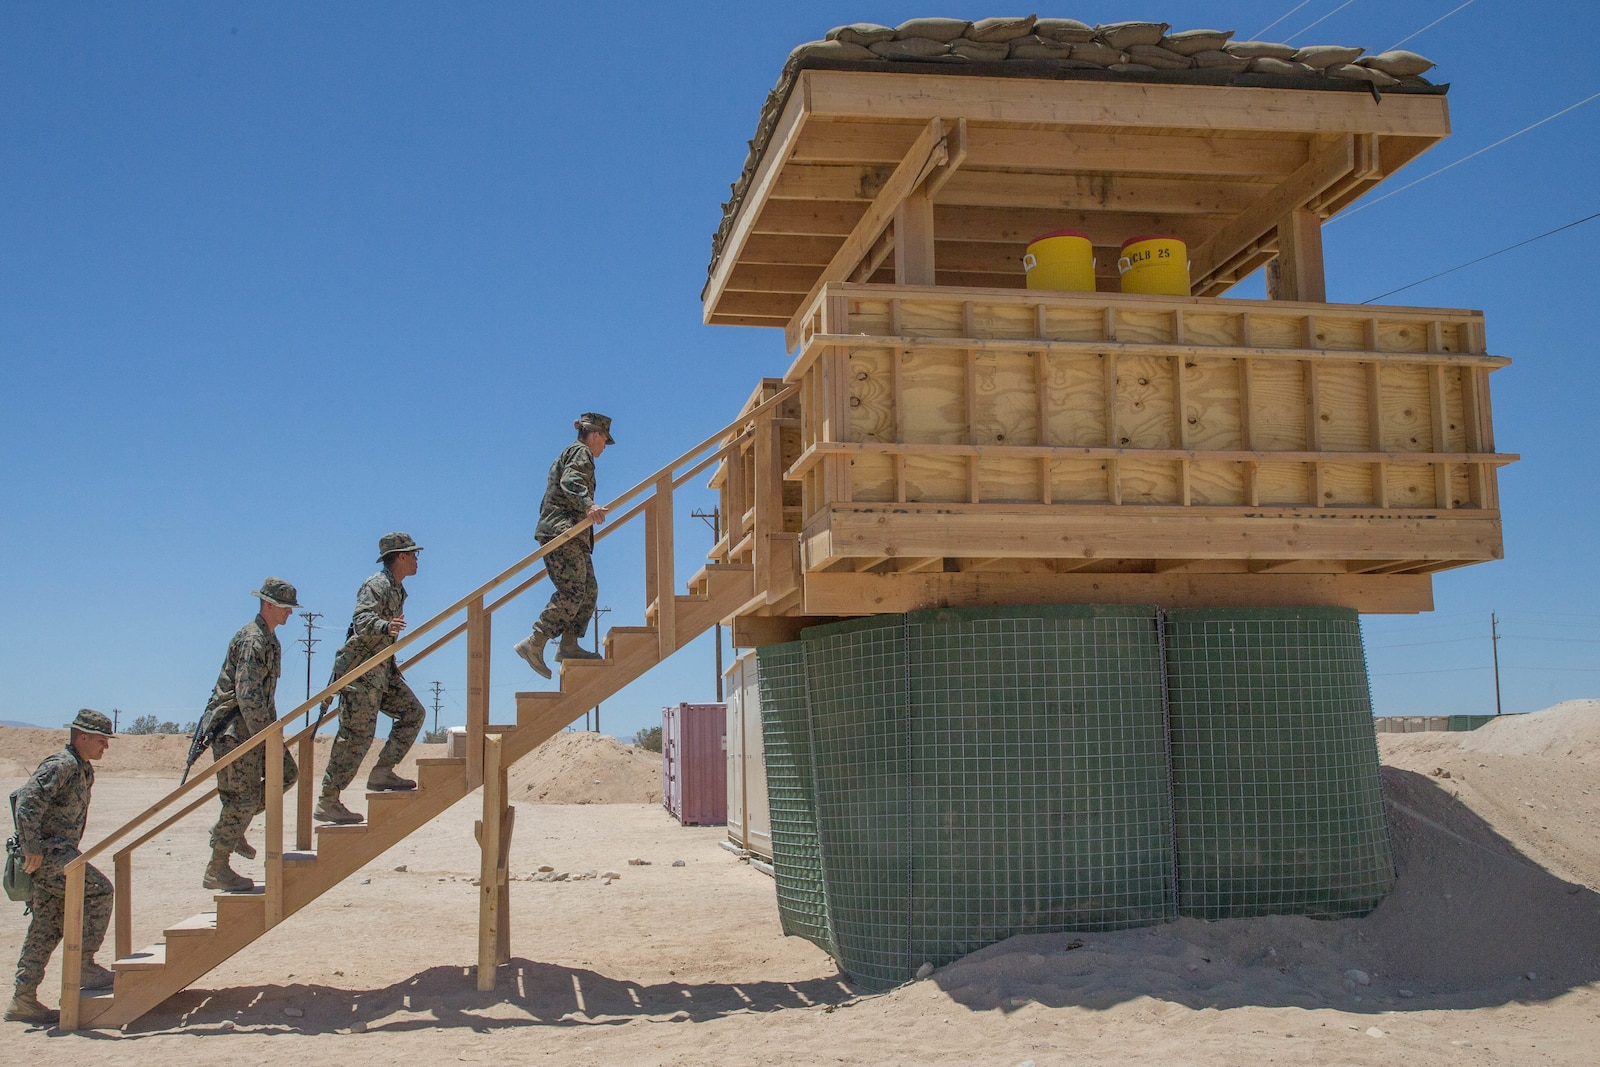 Brig. Gen. Helen G. Pratt, commanding general of 4th Marine Logistics Group, and Sgt. Maj. Lanette N. Wright, sergeant major of 4th MLG,tour the guard towers built during Integrated Training Exercise 4-18 by Combat Logistics Regiment 45.